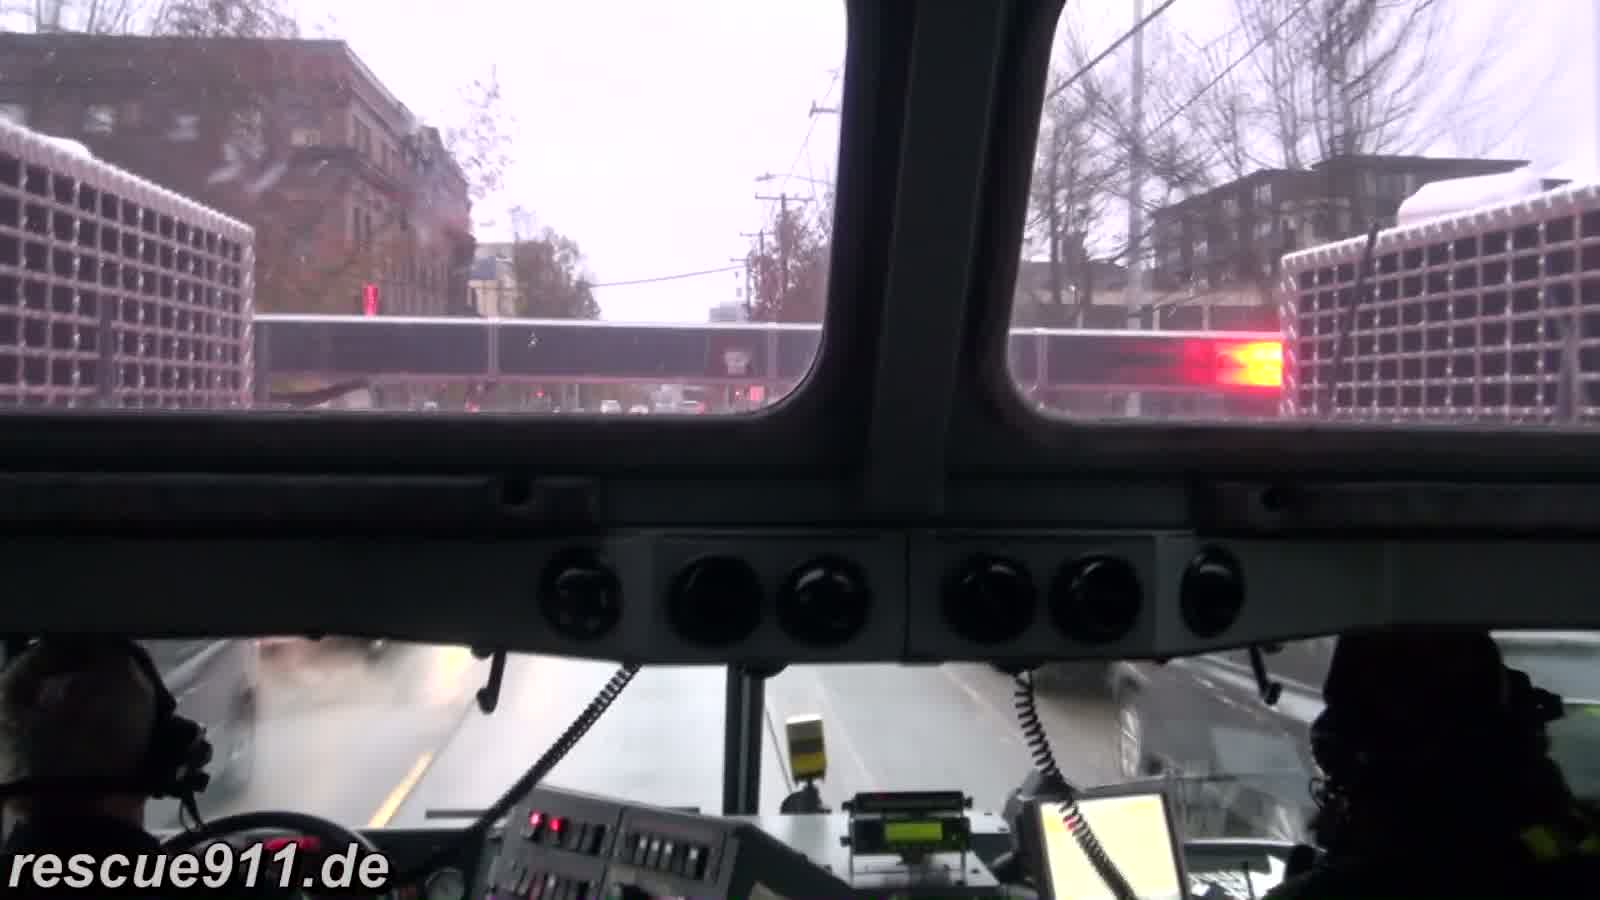 INSIDE VIEW - Ladder 10 Seattle Fire Department (stream)